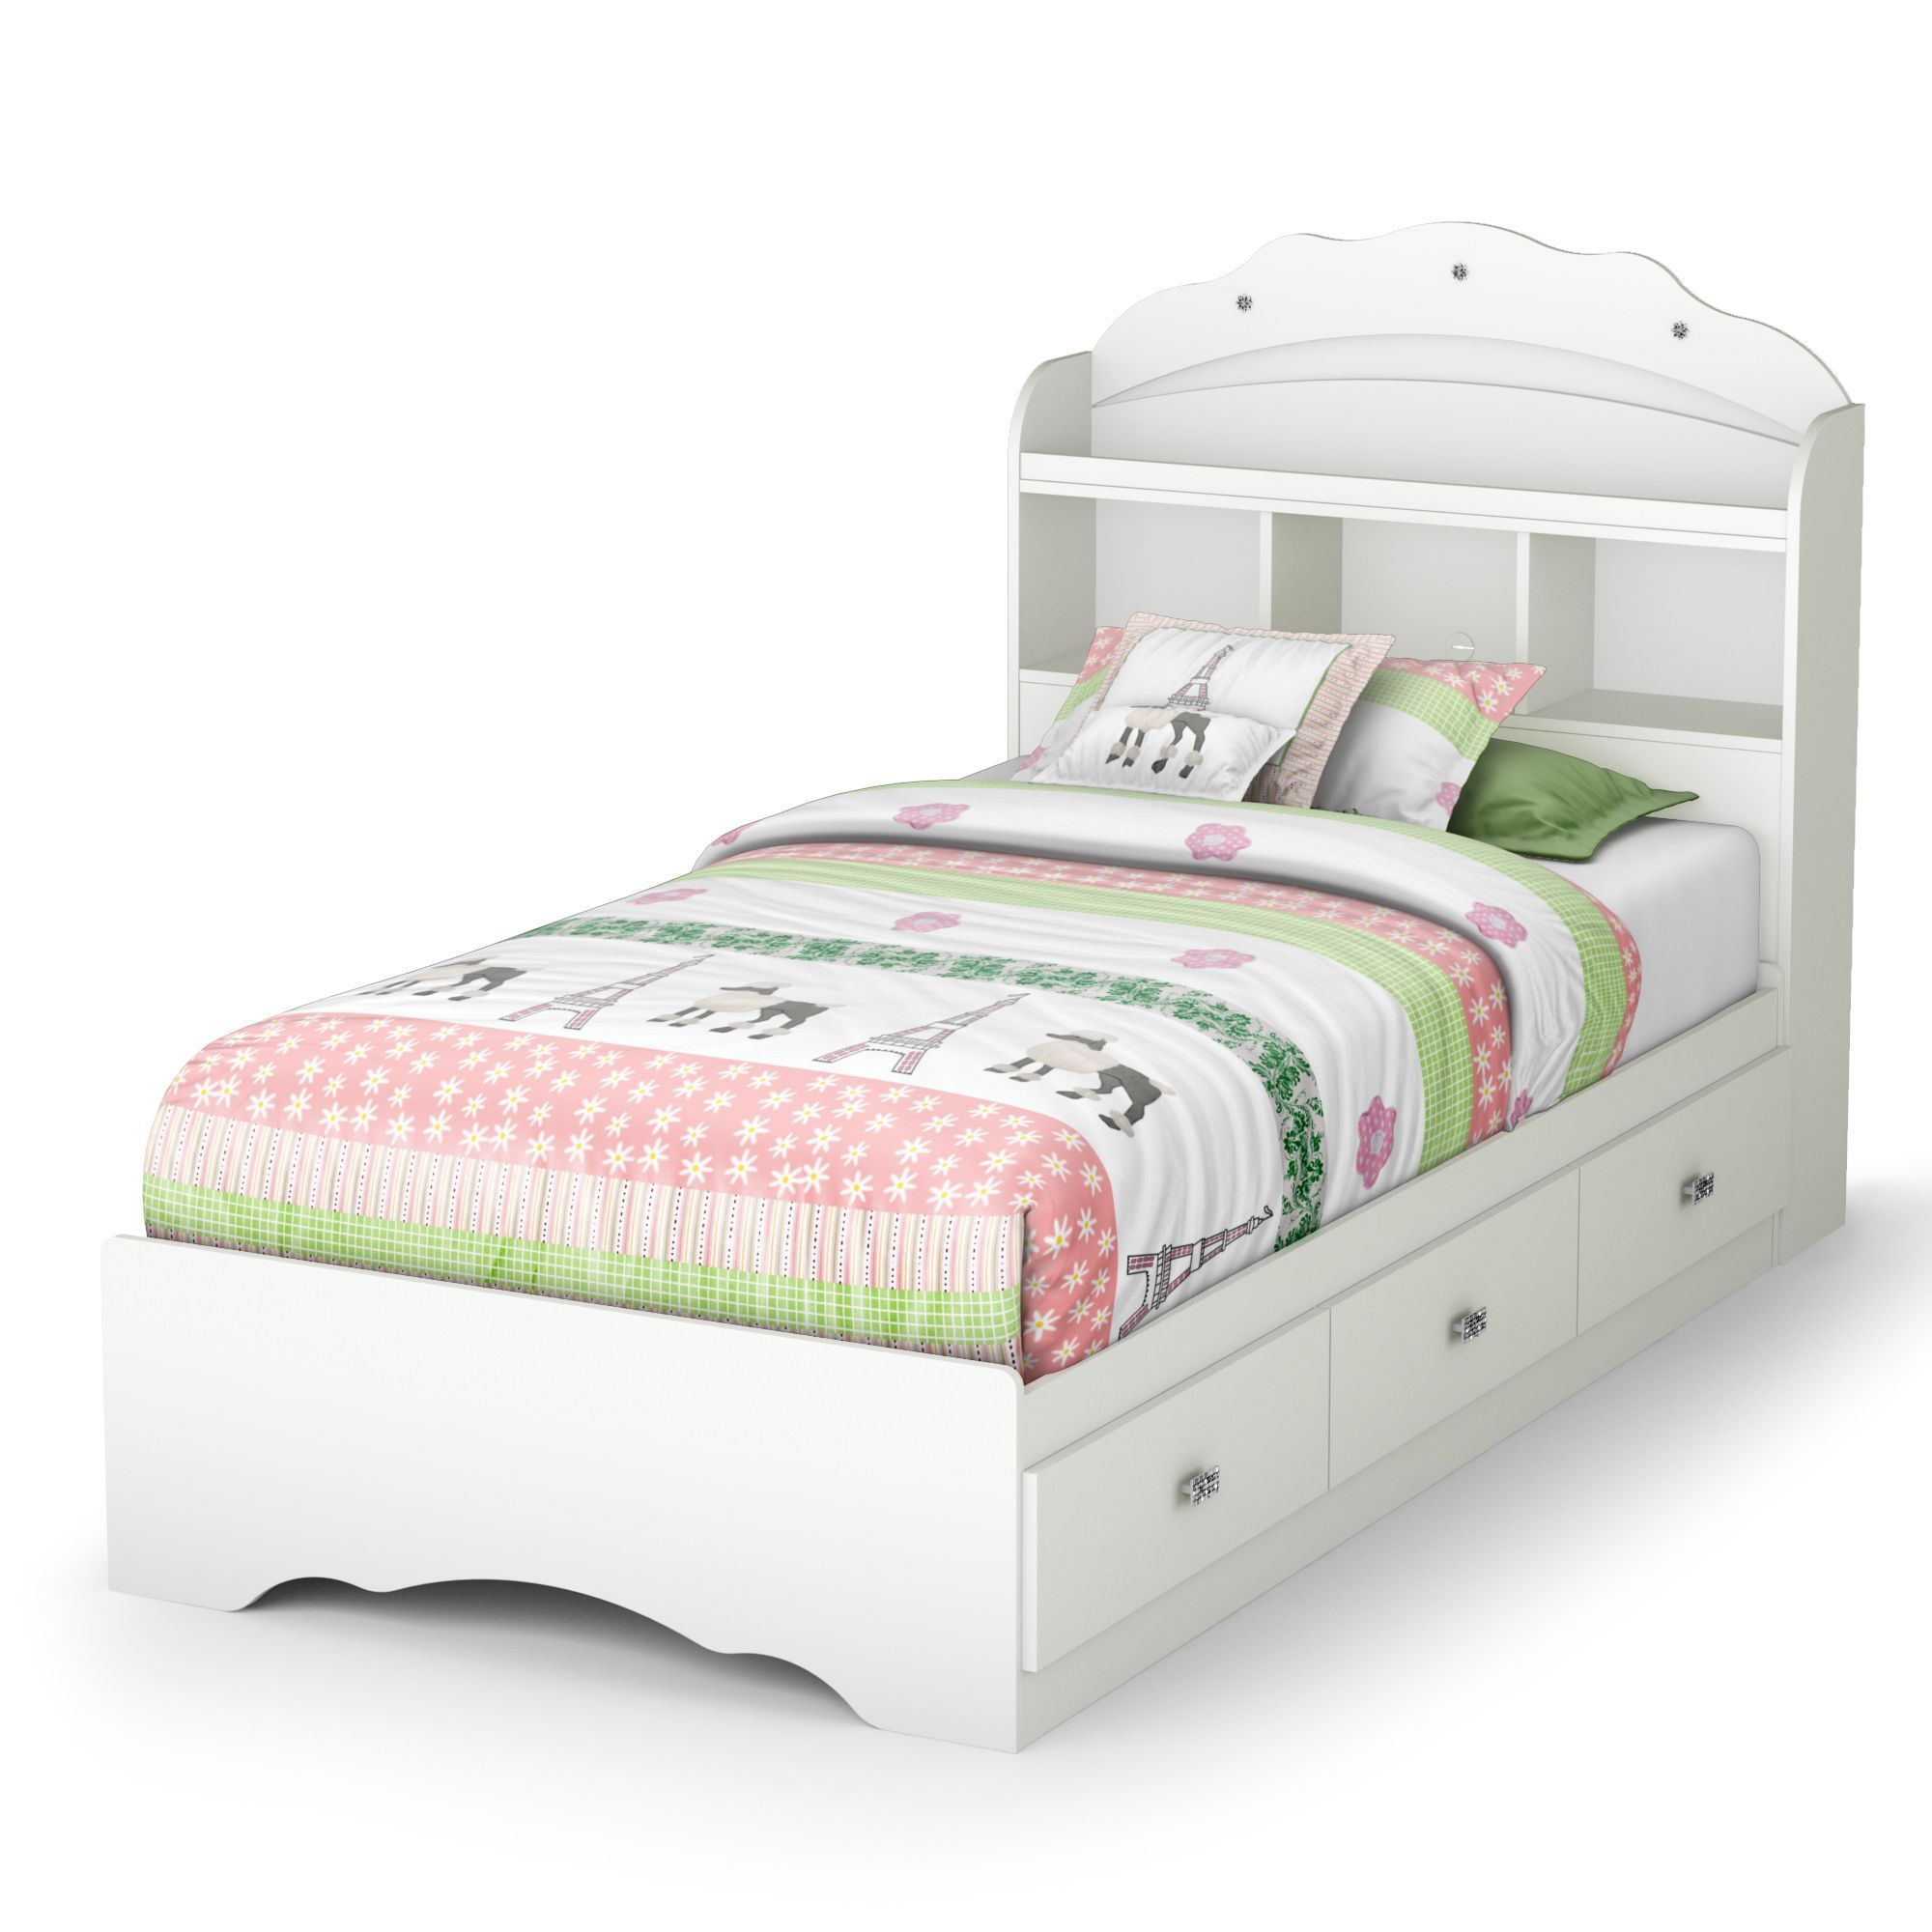 Large Of Twin Bed Headboards